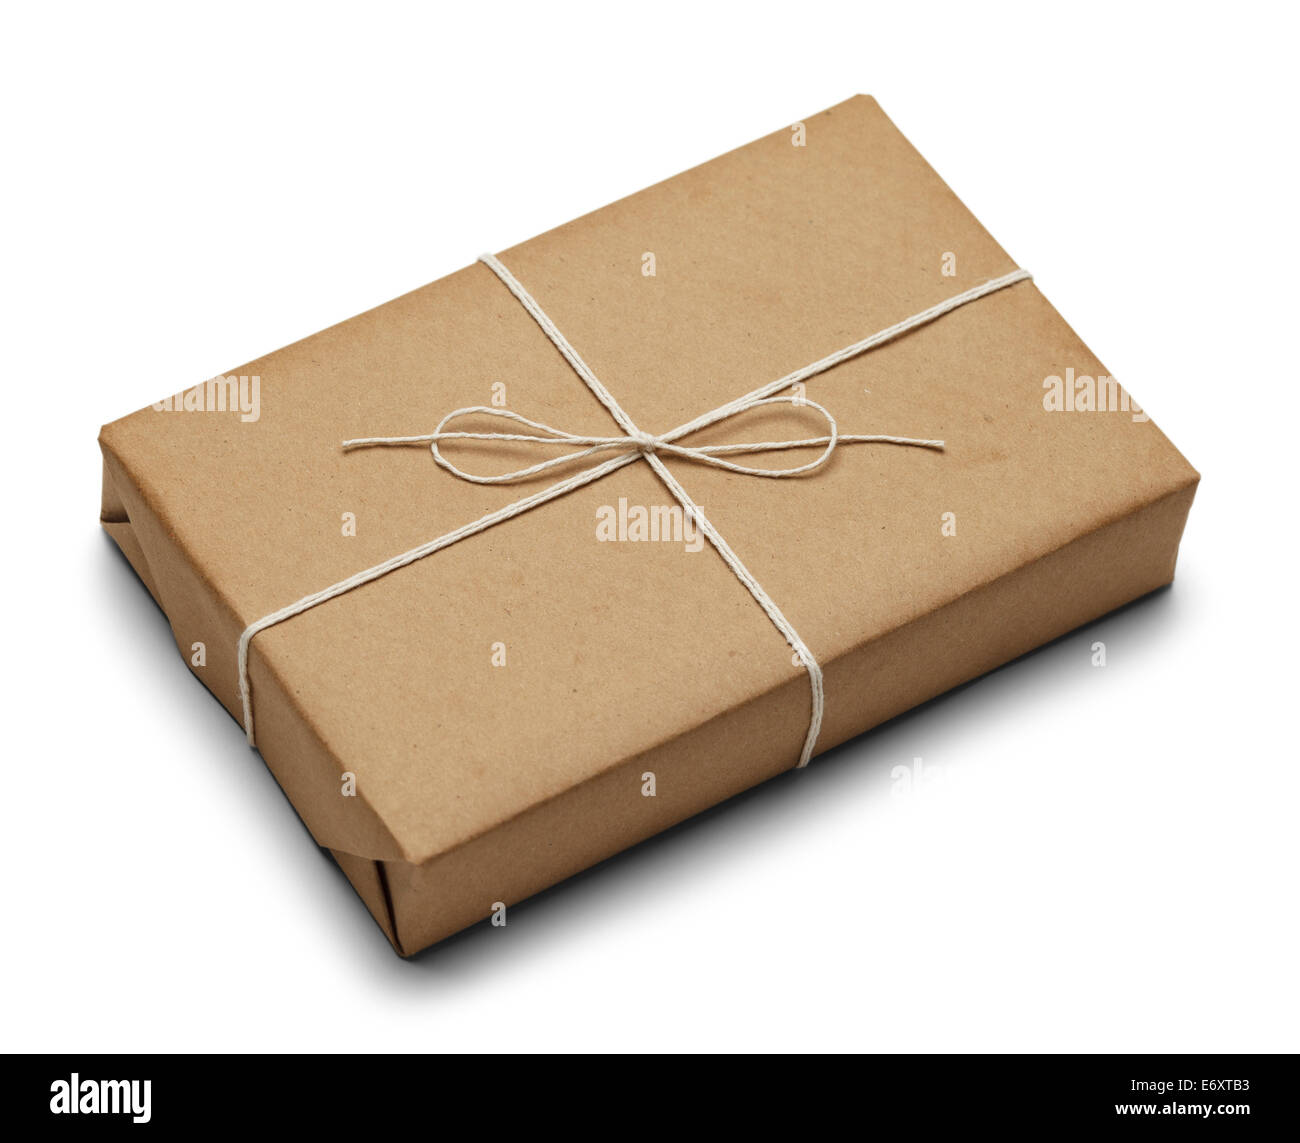 Tied Brown Paper Package With Rope Isolated on White Background. - Stock Image